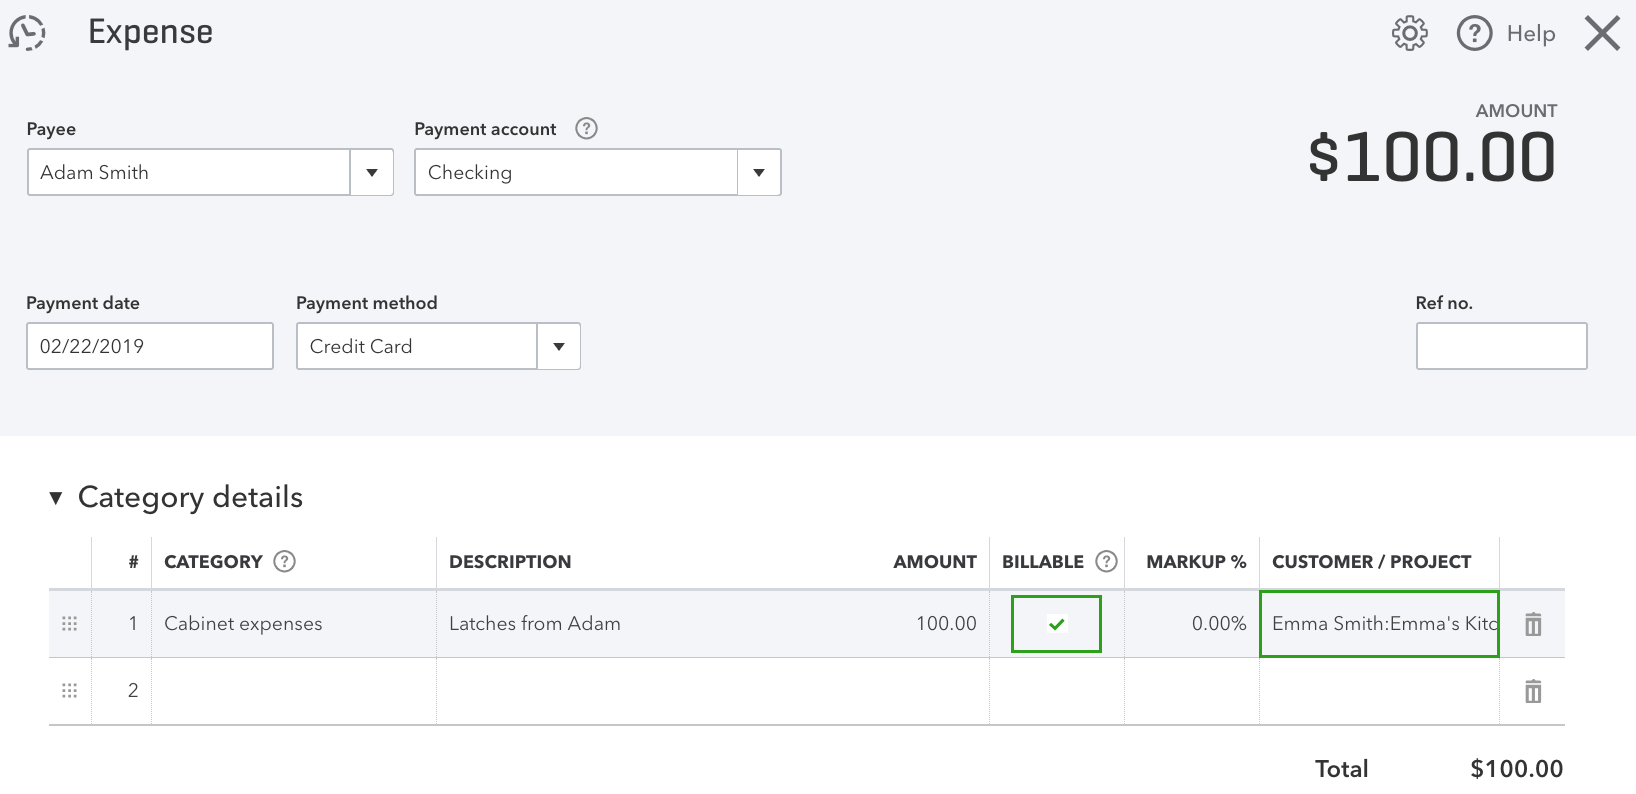 Invoice customers for project time and expenses - Add billable expense